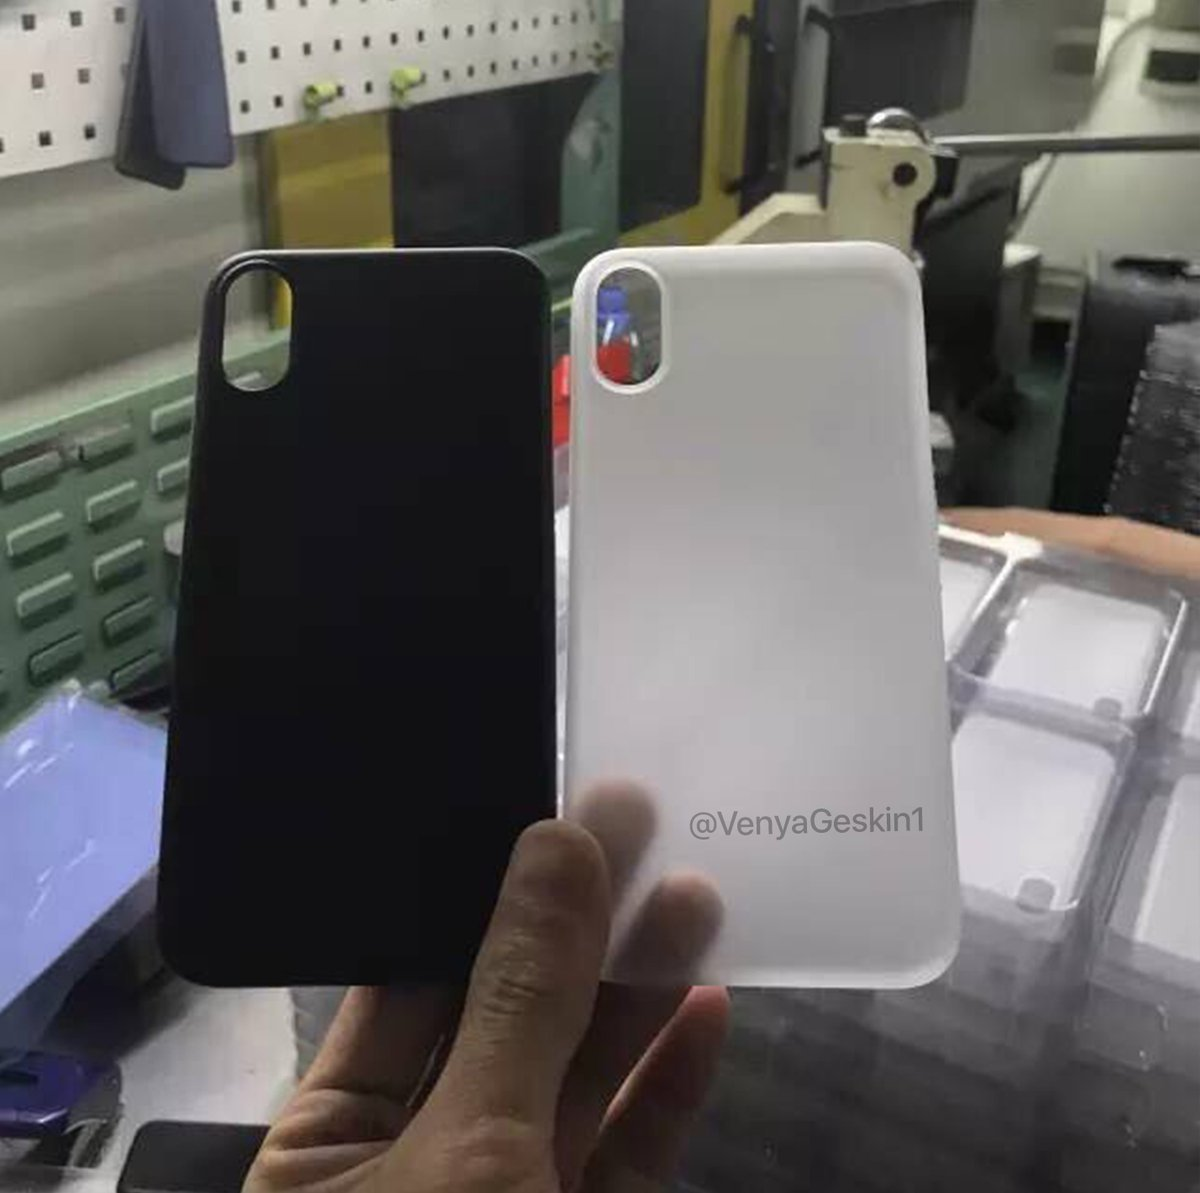 iPhone, iPhone 8, Hình ảnh iPhone 8